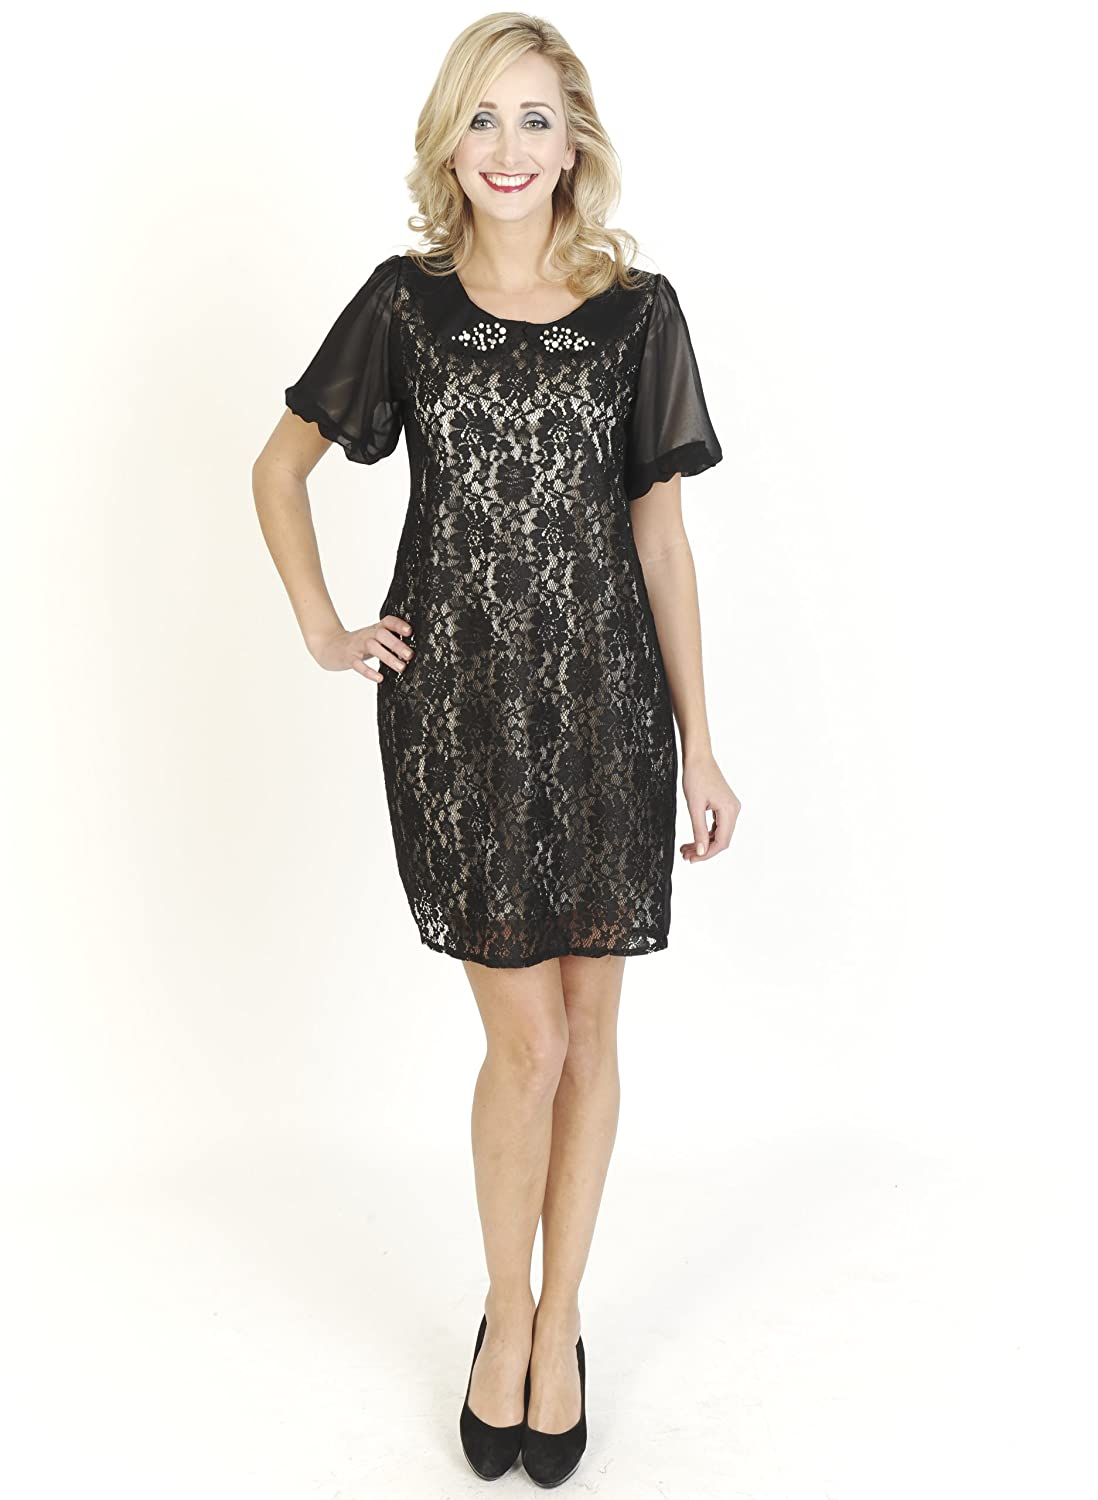 Black Bielle Short Mini Short Sleeve Shift Style Collared Floral Lace Day Dress